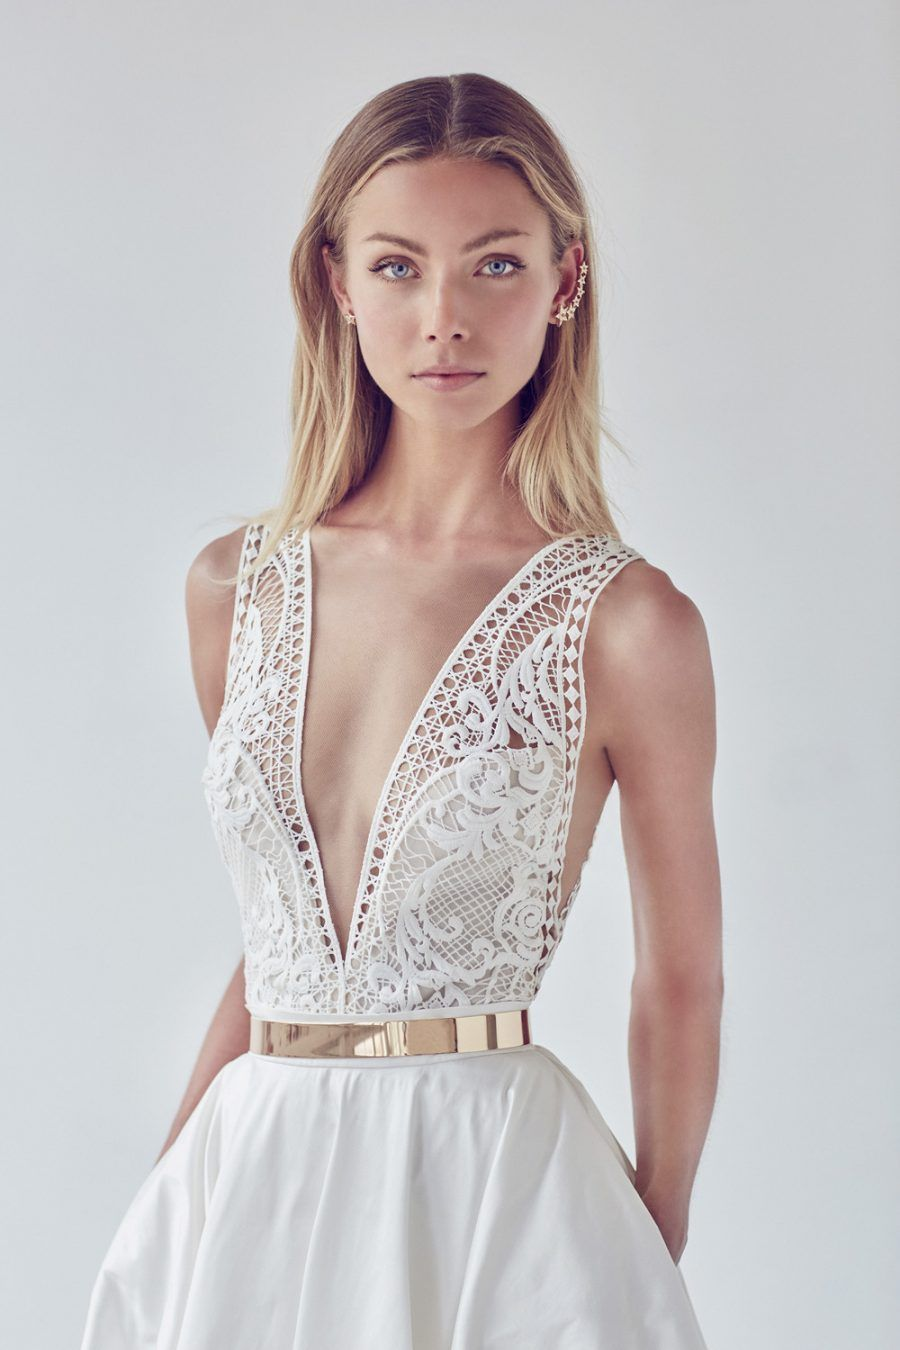 Gold belt for wedding dress   bridal collection by Suzanne Harward  Wedding dresses